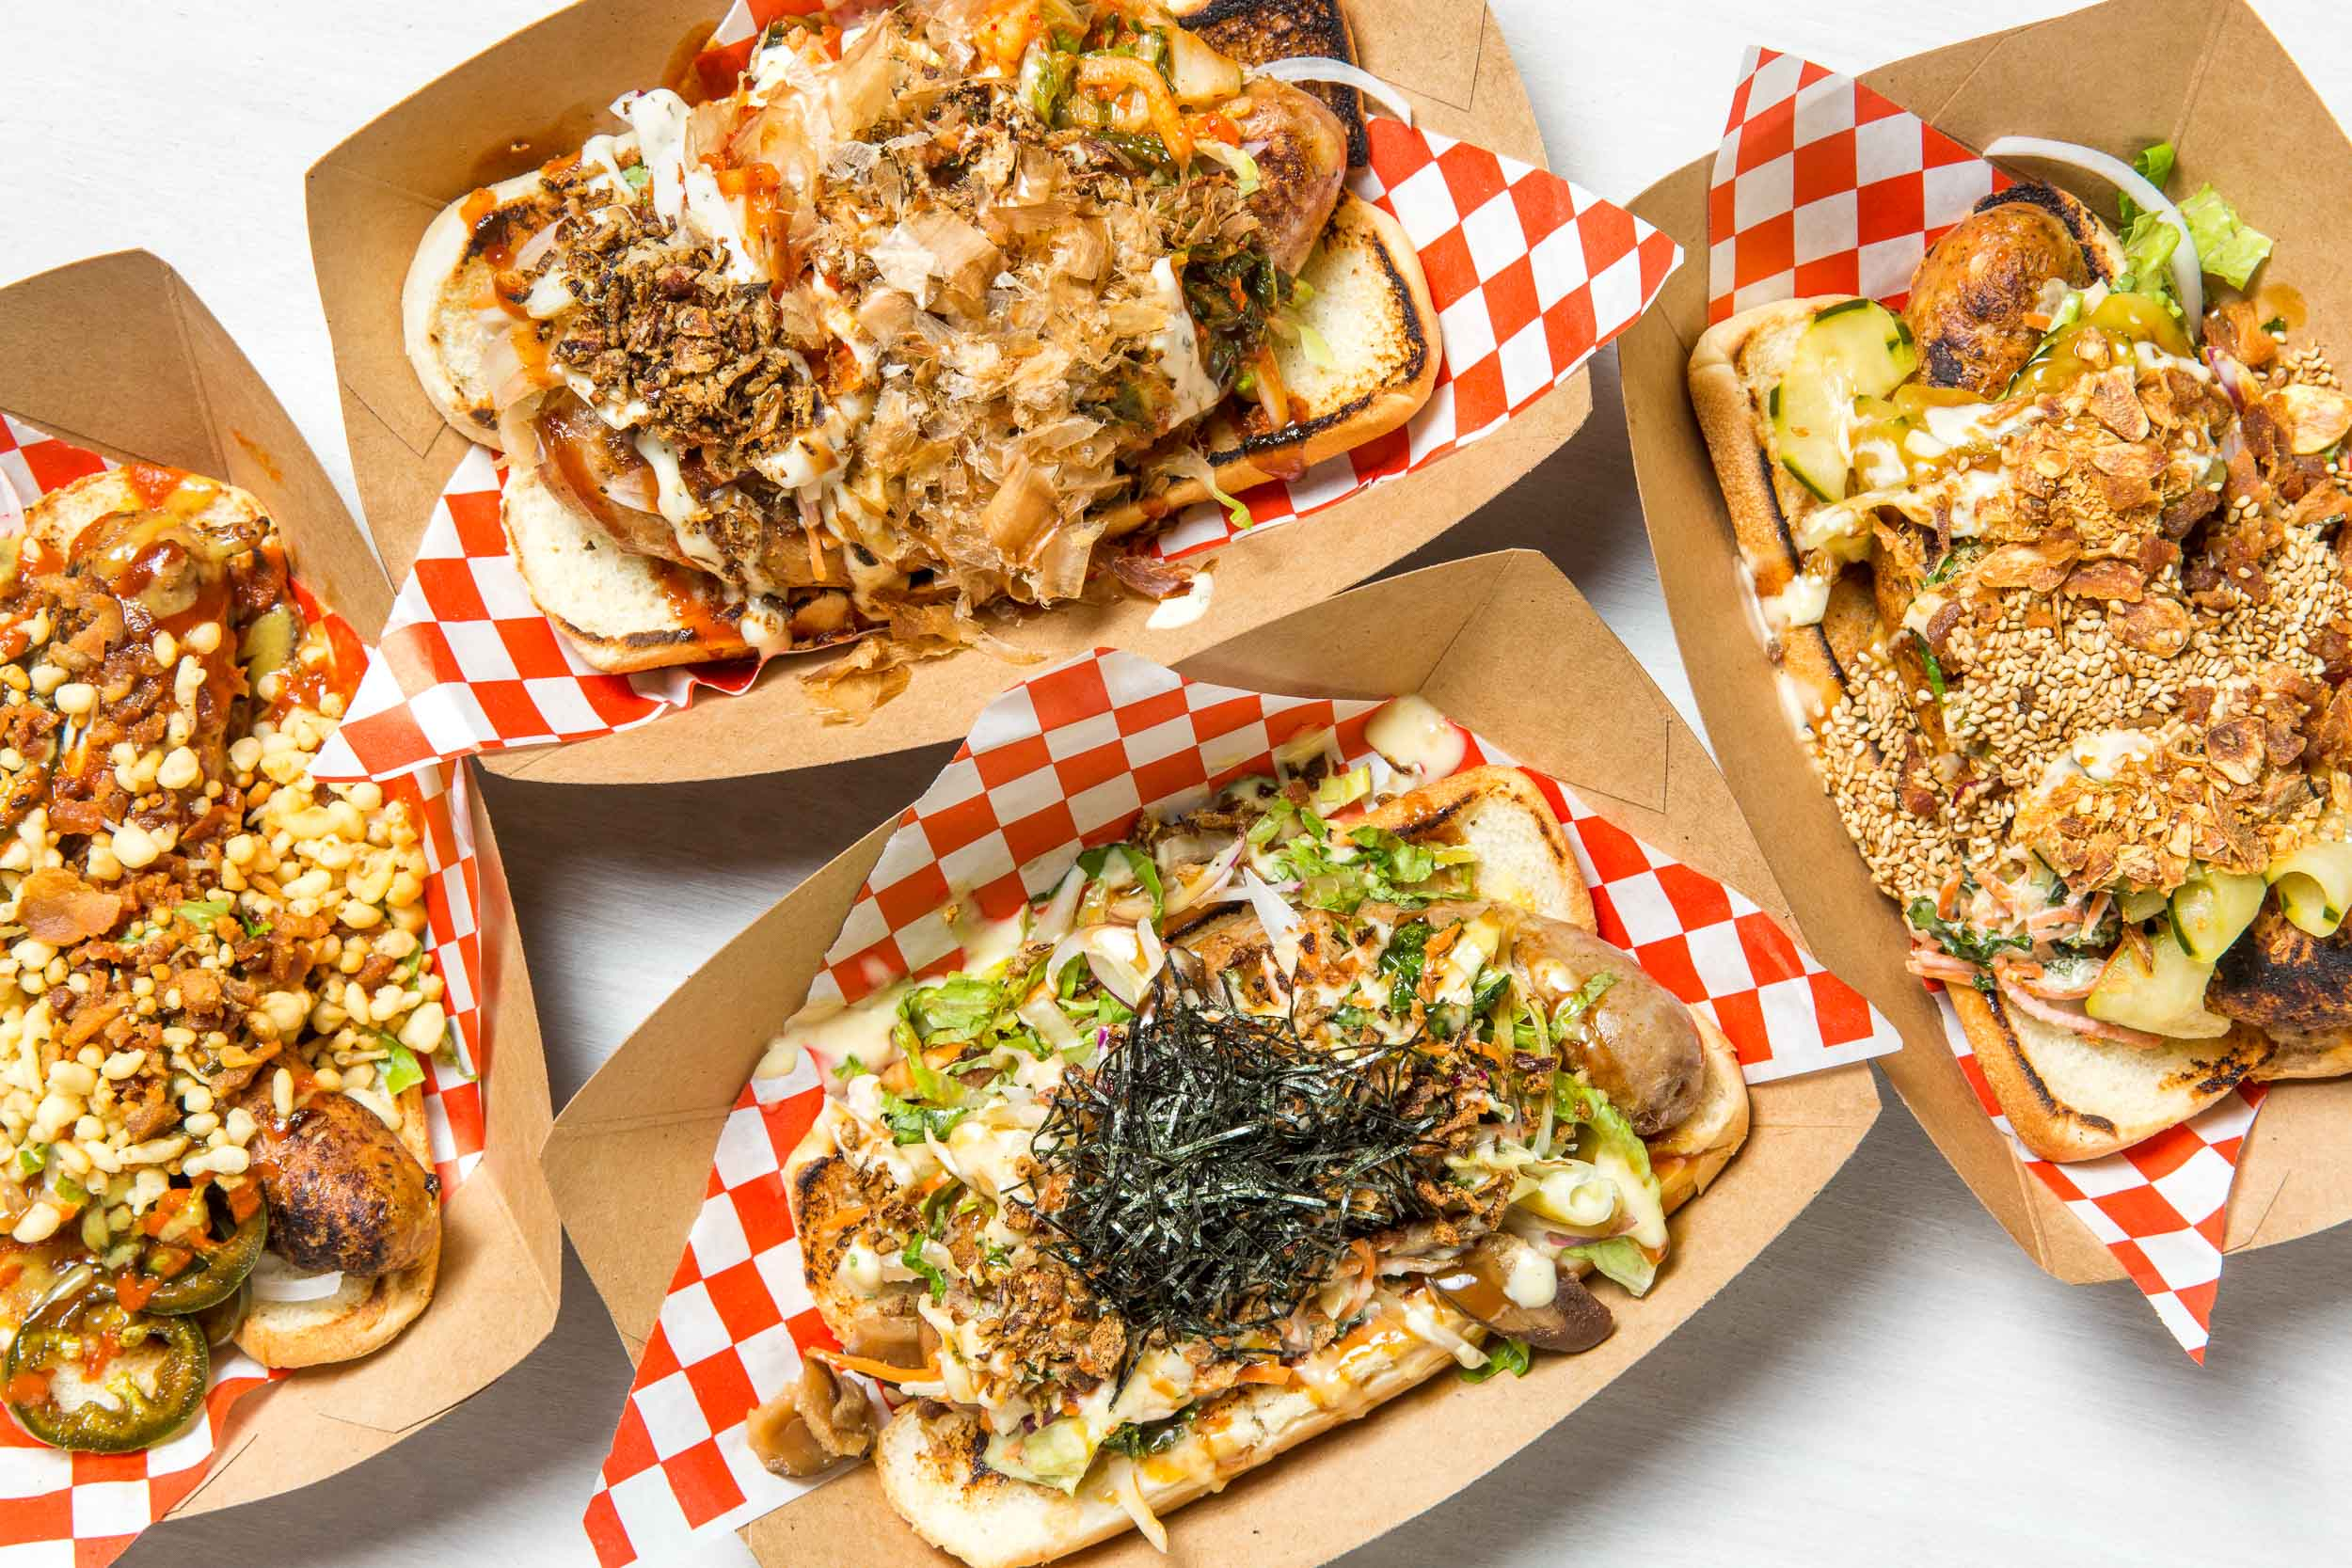 Aburaya Kamikaze Dogs, hot dogs and sausages with gourmet Japanese-inspired toppings for San Francisco Magazine